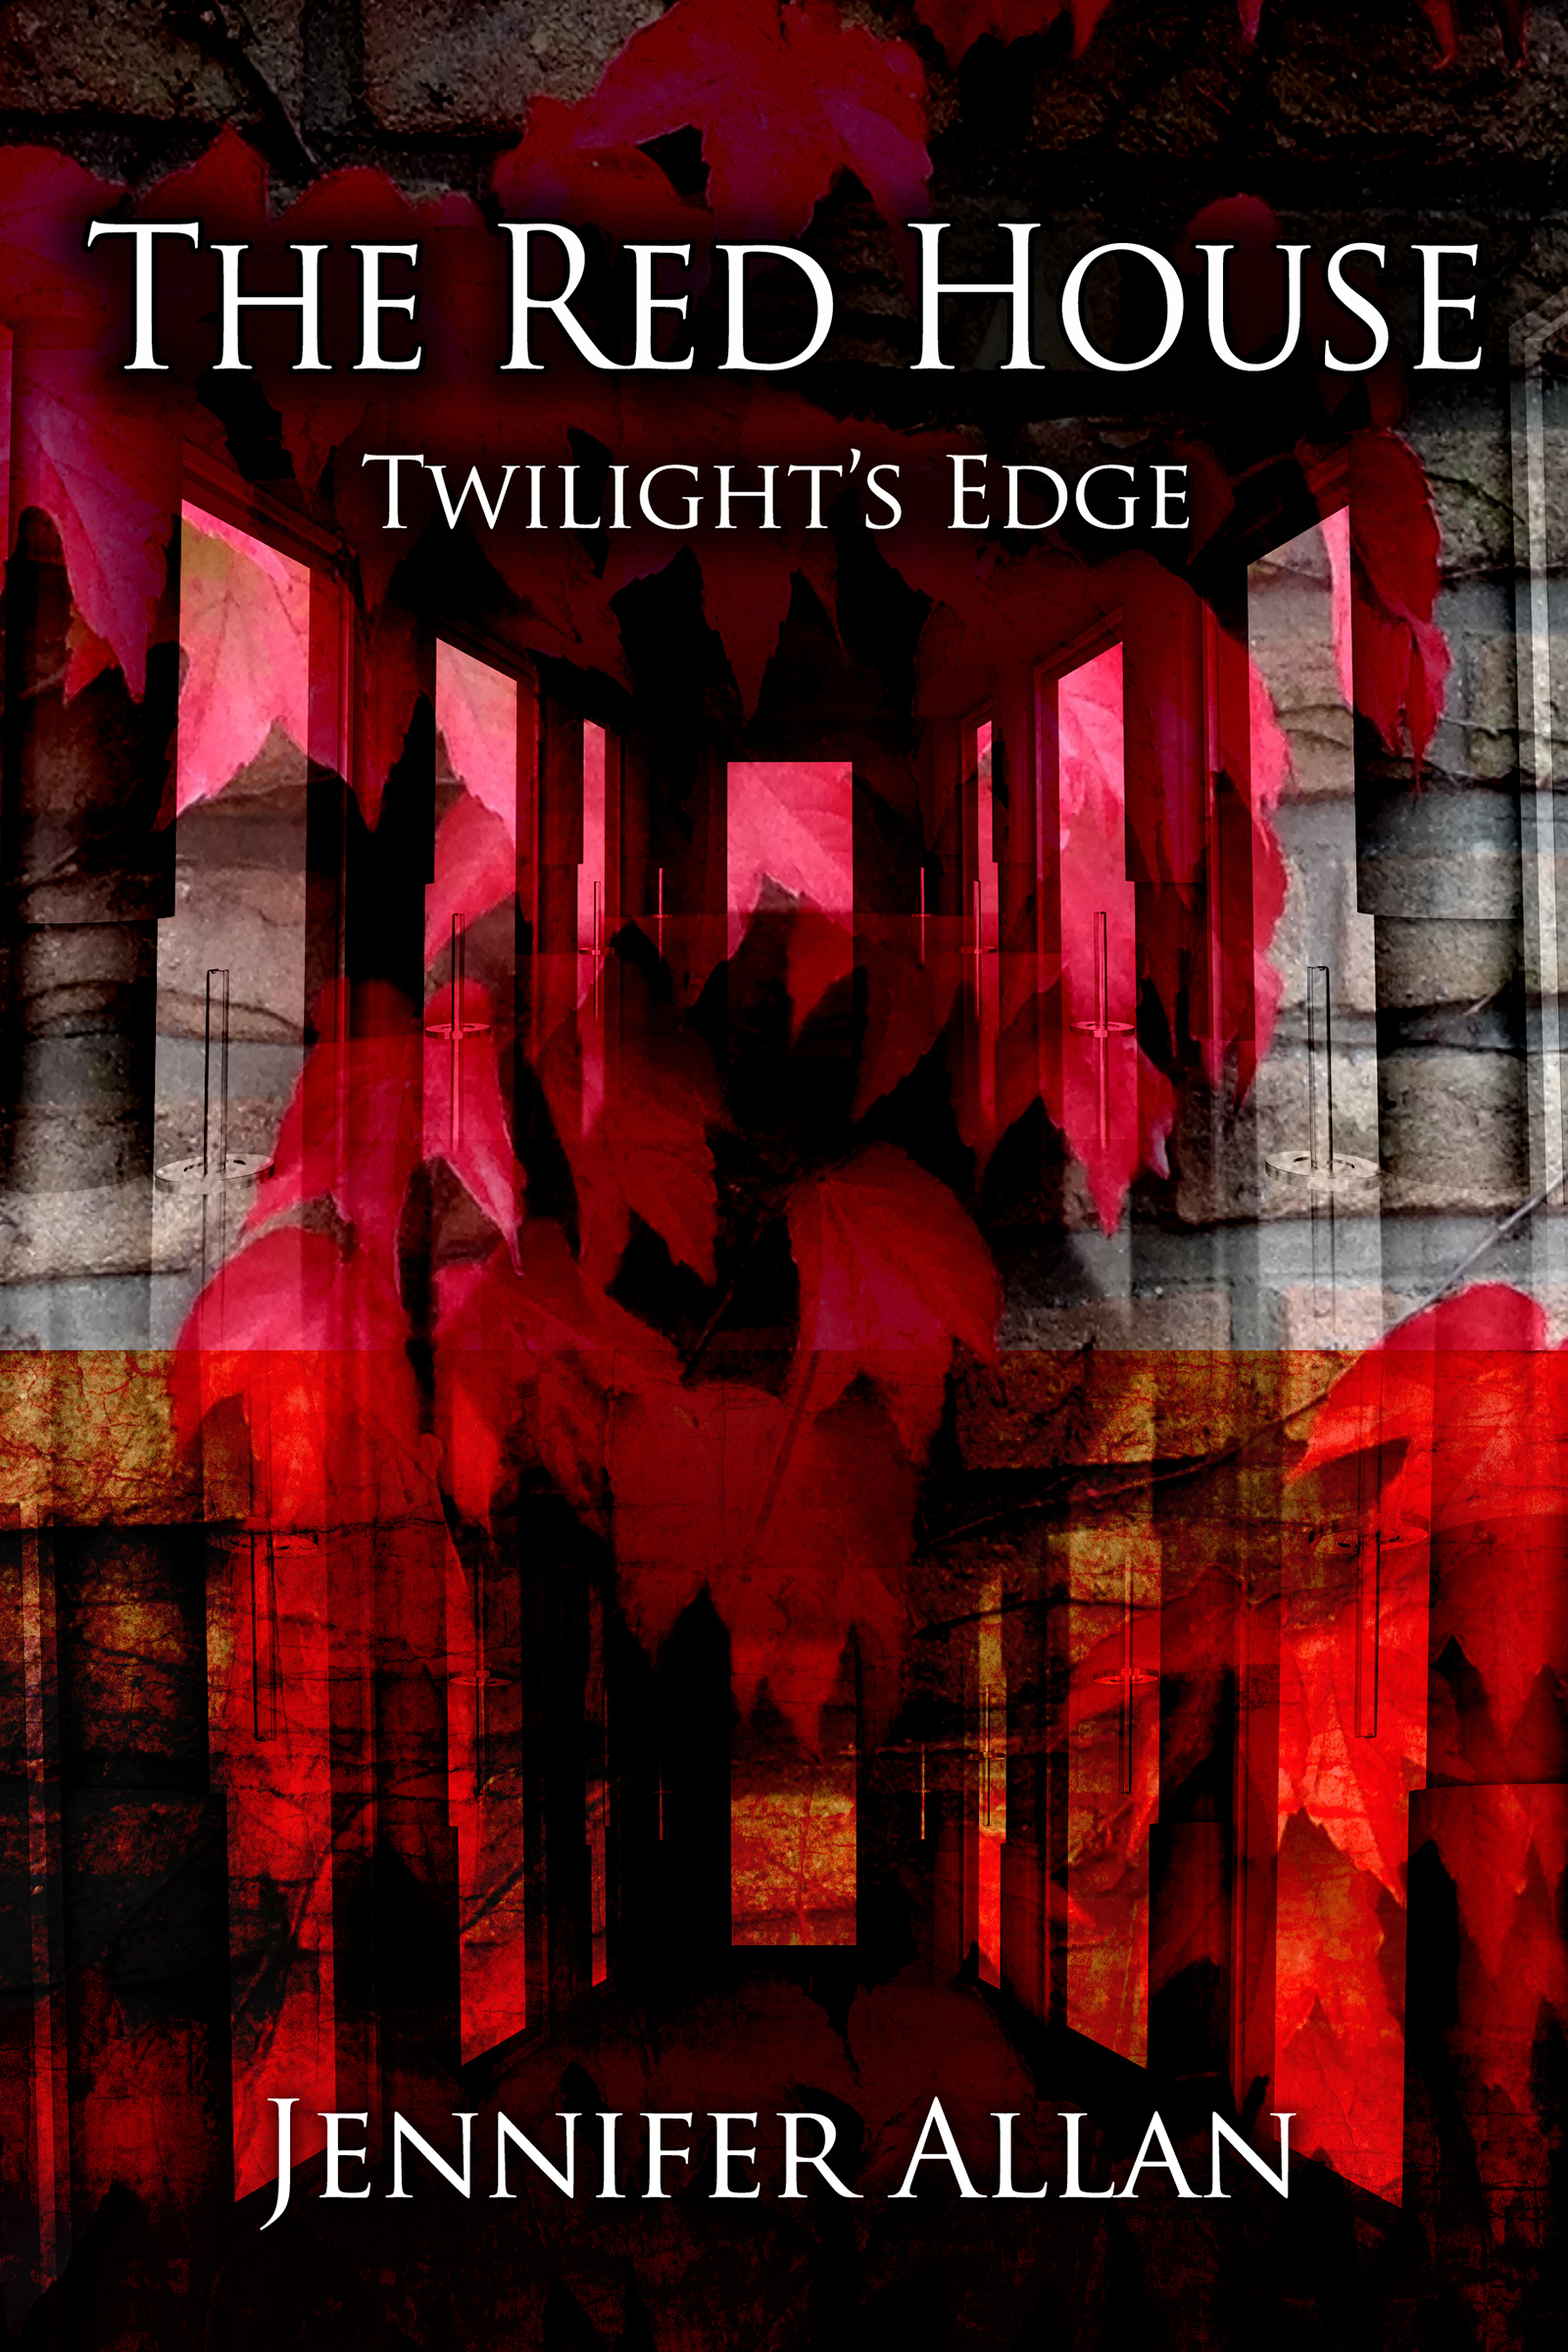 The Red House: Twilight's Edge